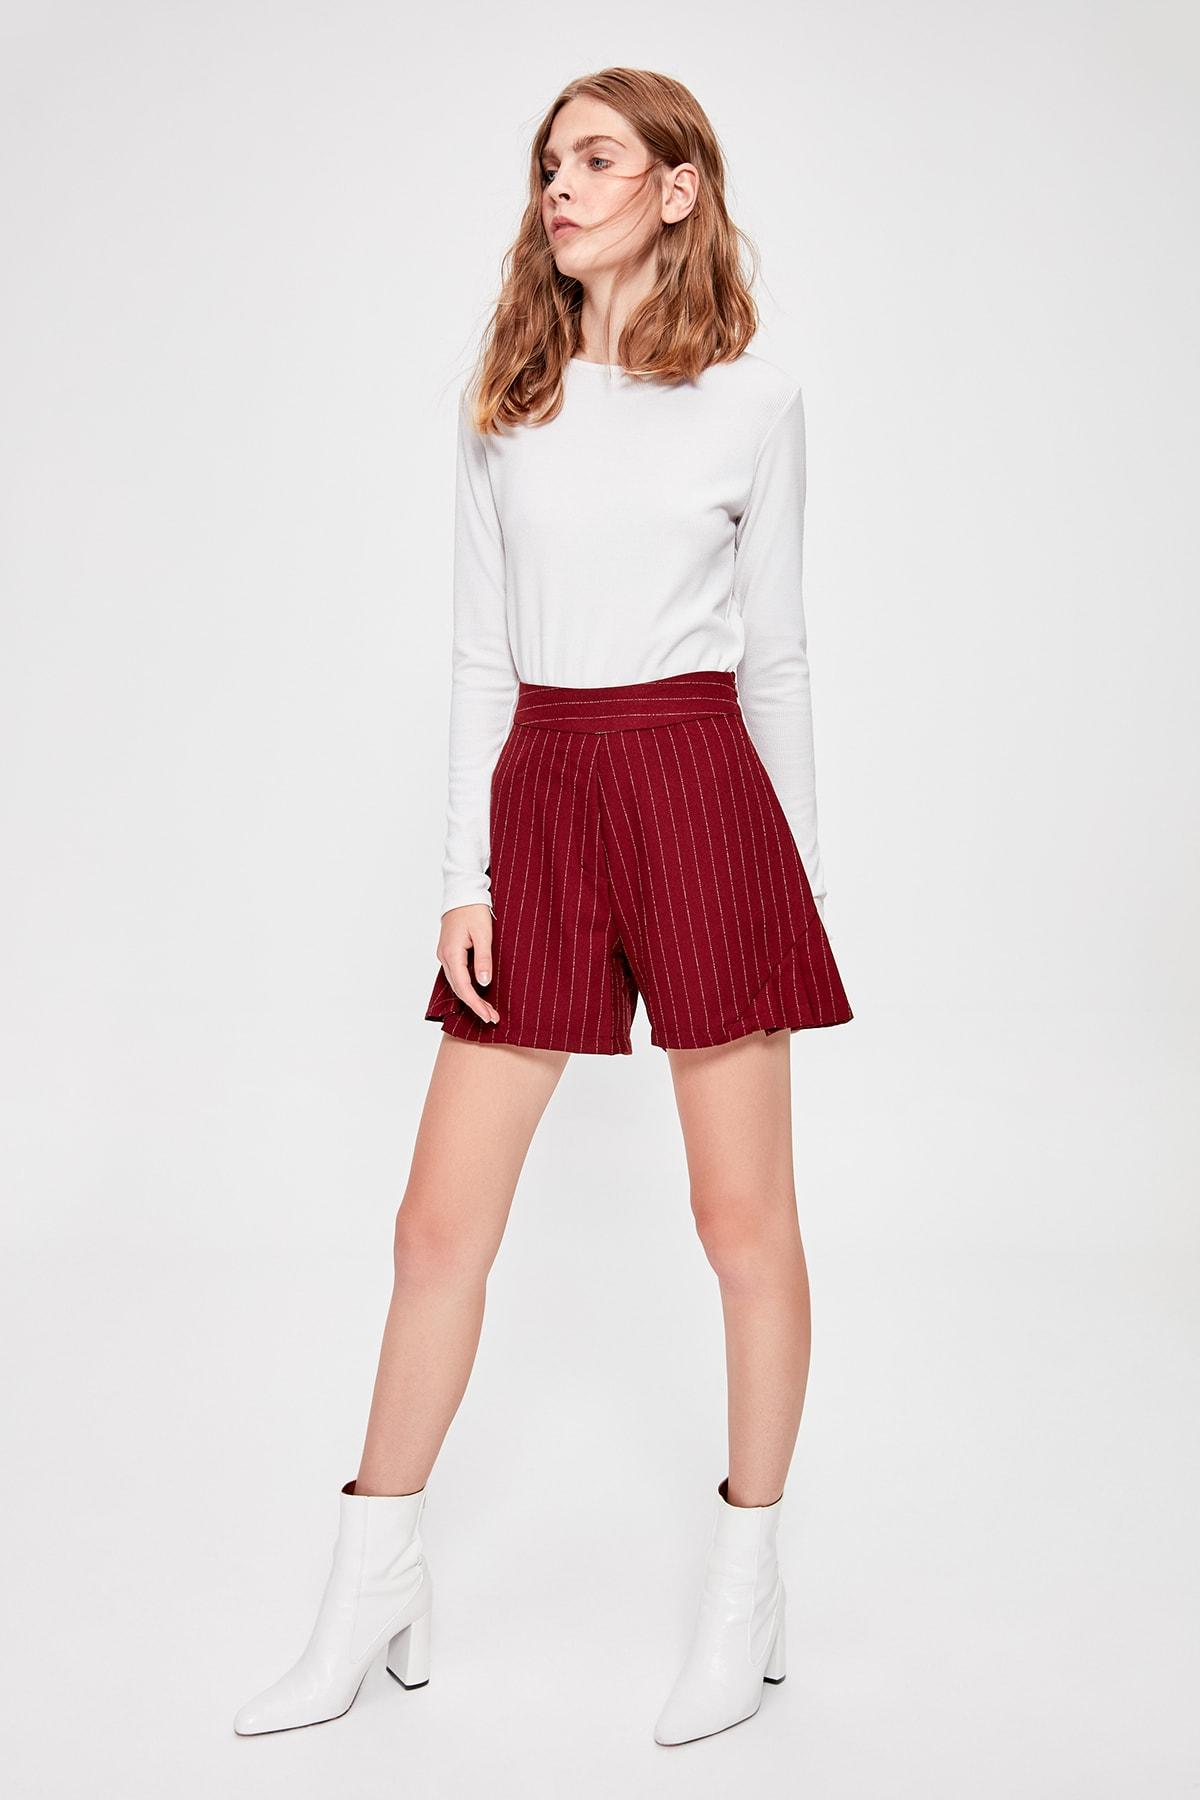 Trendyol Burgundy Striped Shorts TWOAW20SR0048